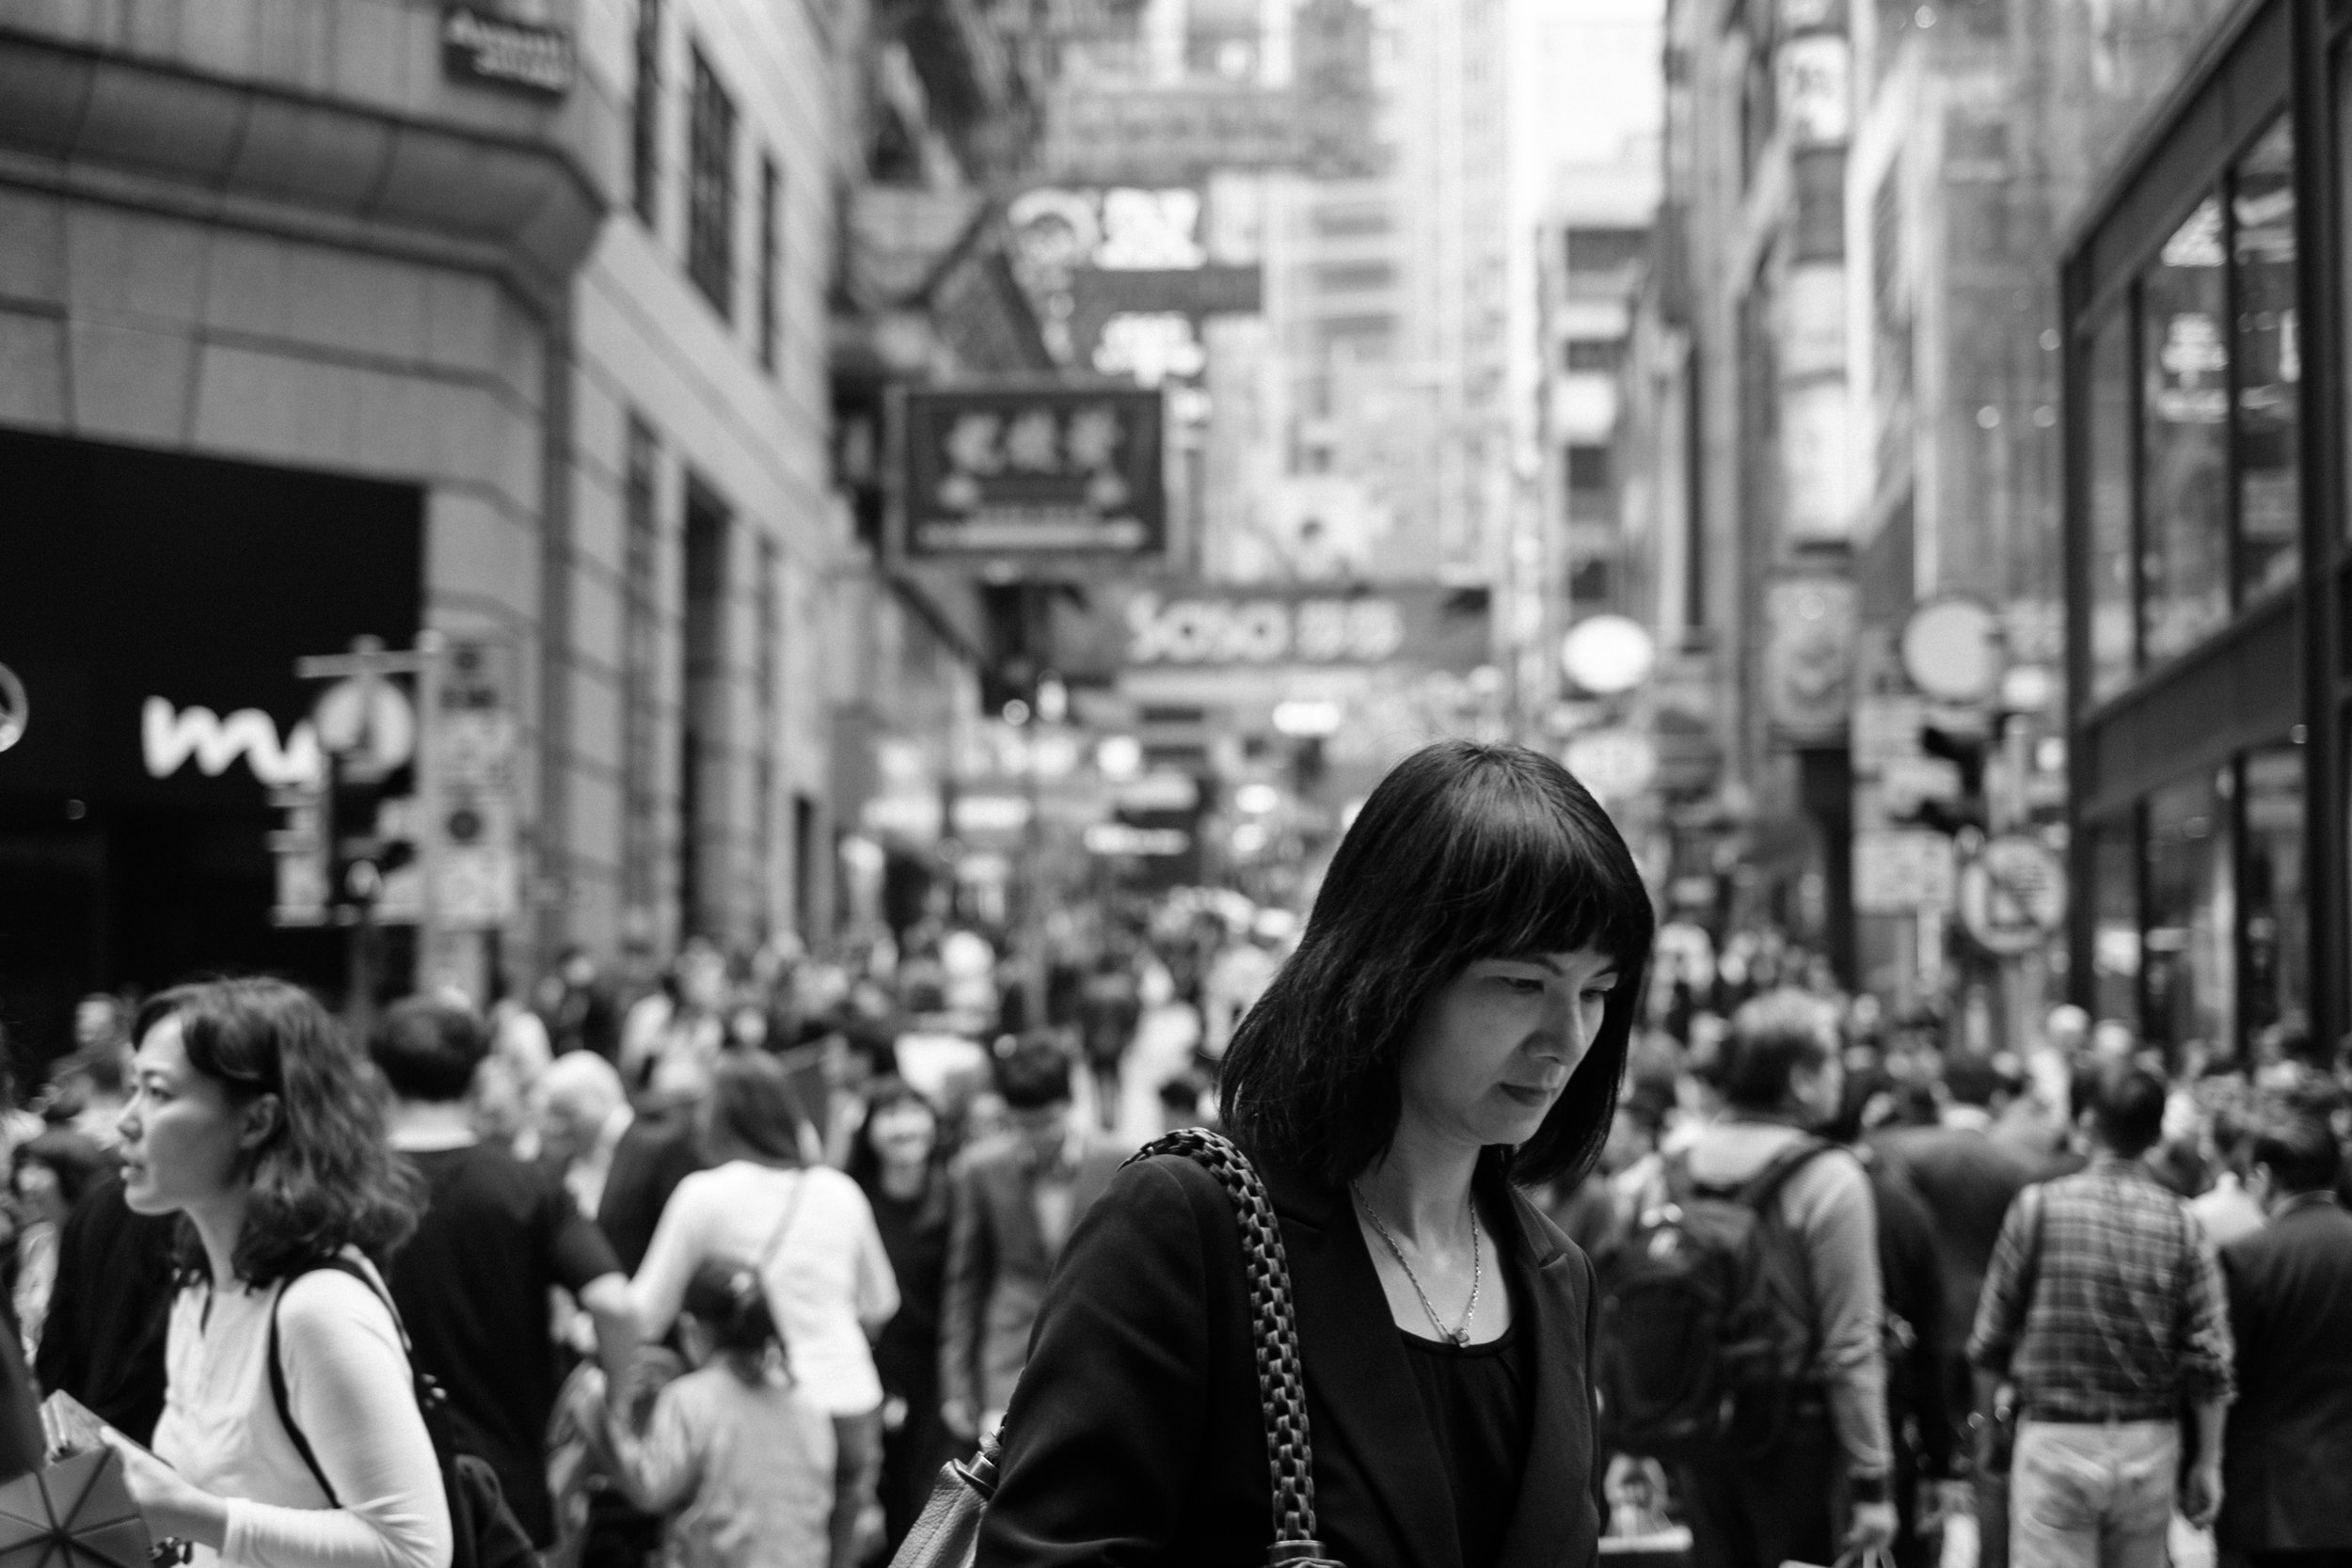 A woman crosses the street in the crowded Hong Kong Central district